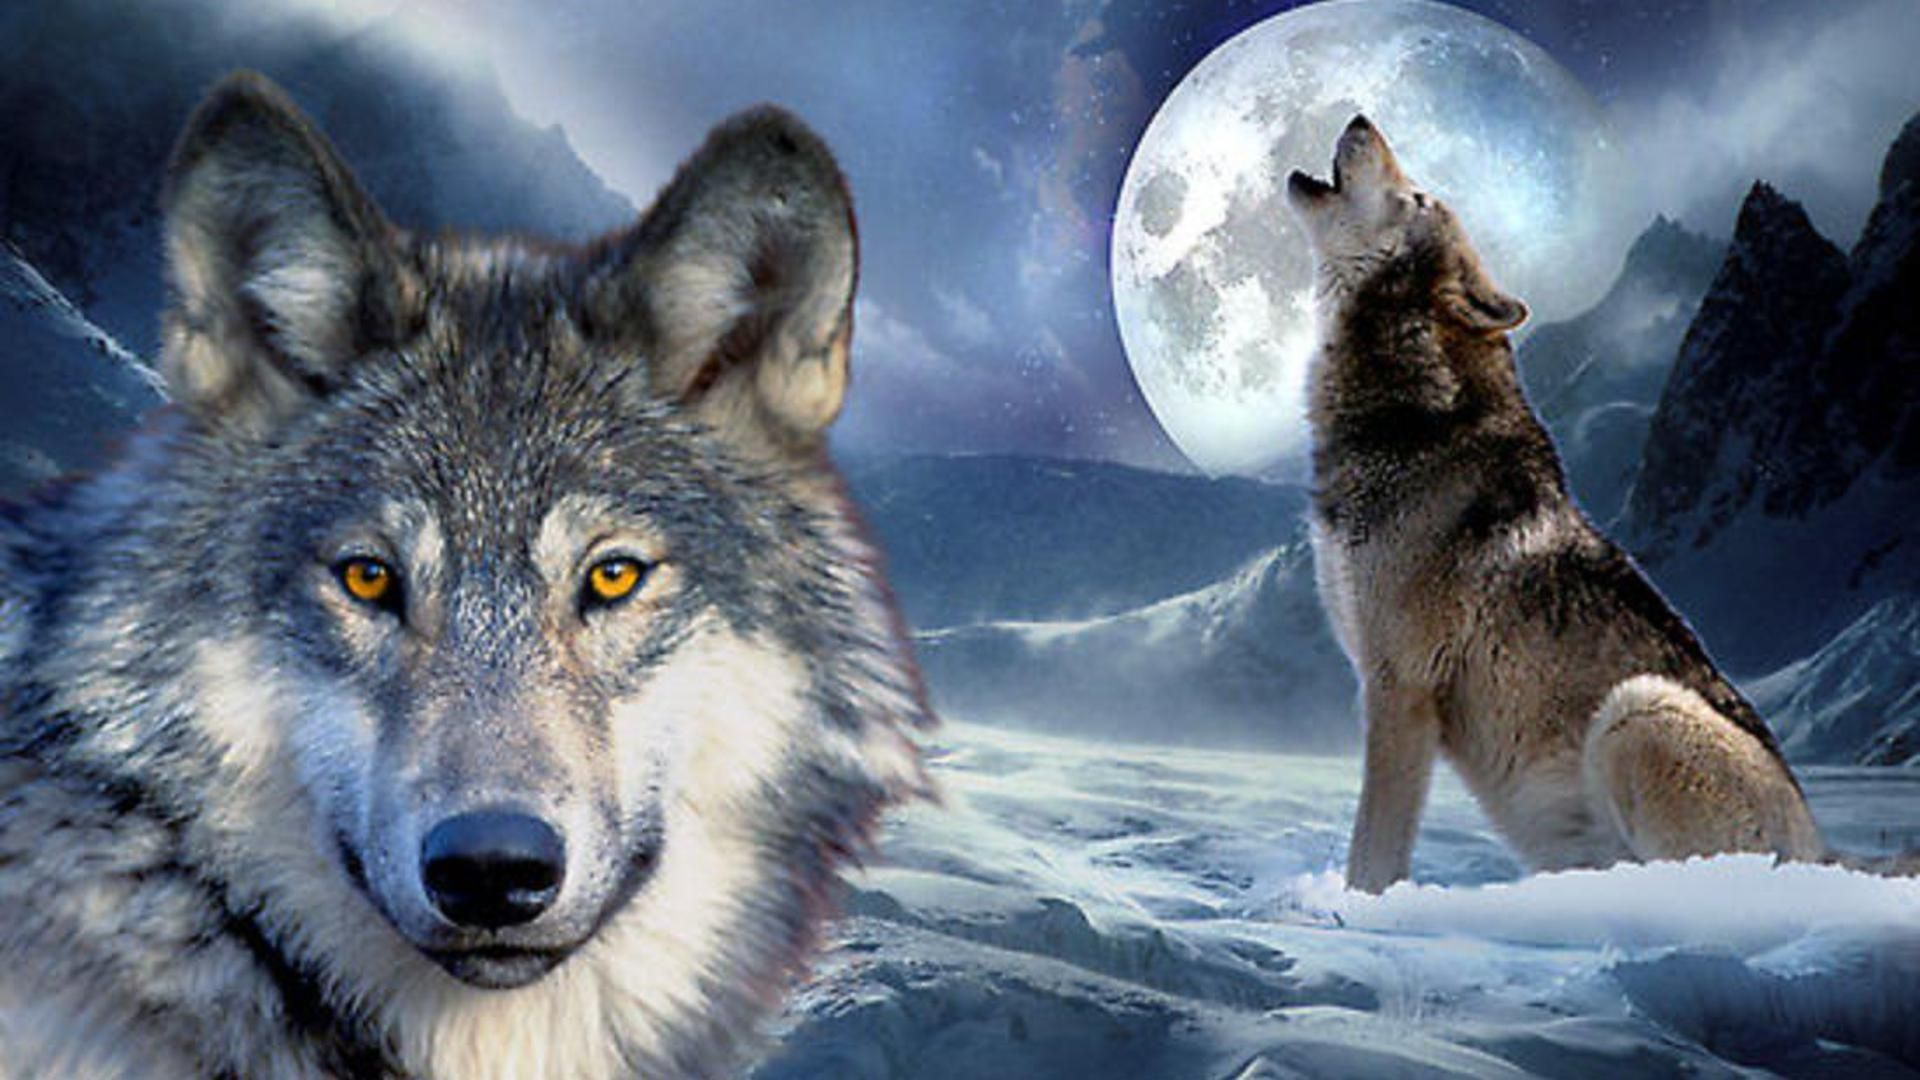 Superwall Us Wallpaper Howling At The Moon Pips Nature Grey Wolf Hd Wallpaper Pjaw Jpg Animals Wolf Wallpaper Wolf Pictures Best of pictures of gray wolves howling